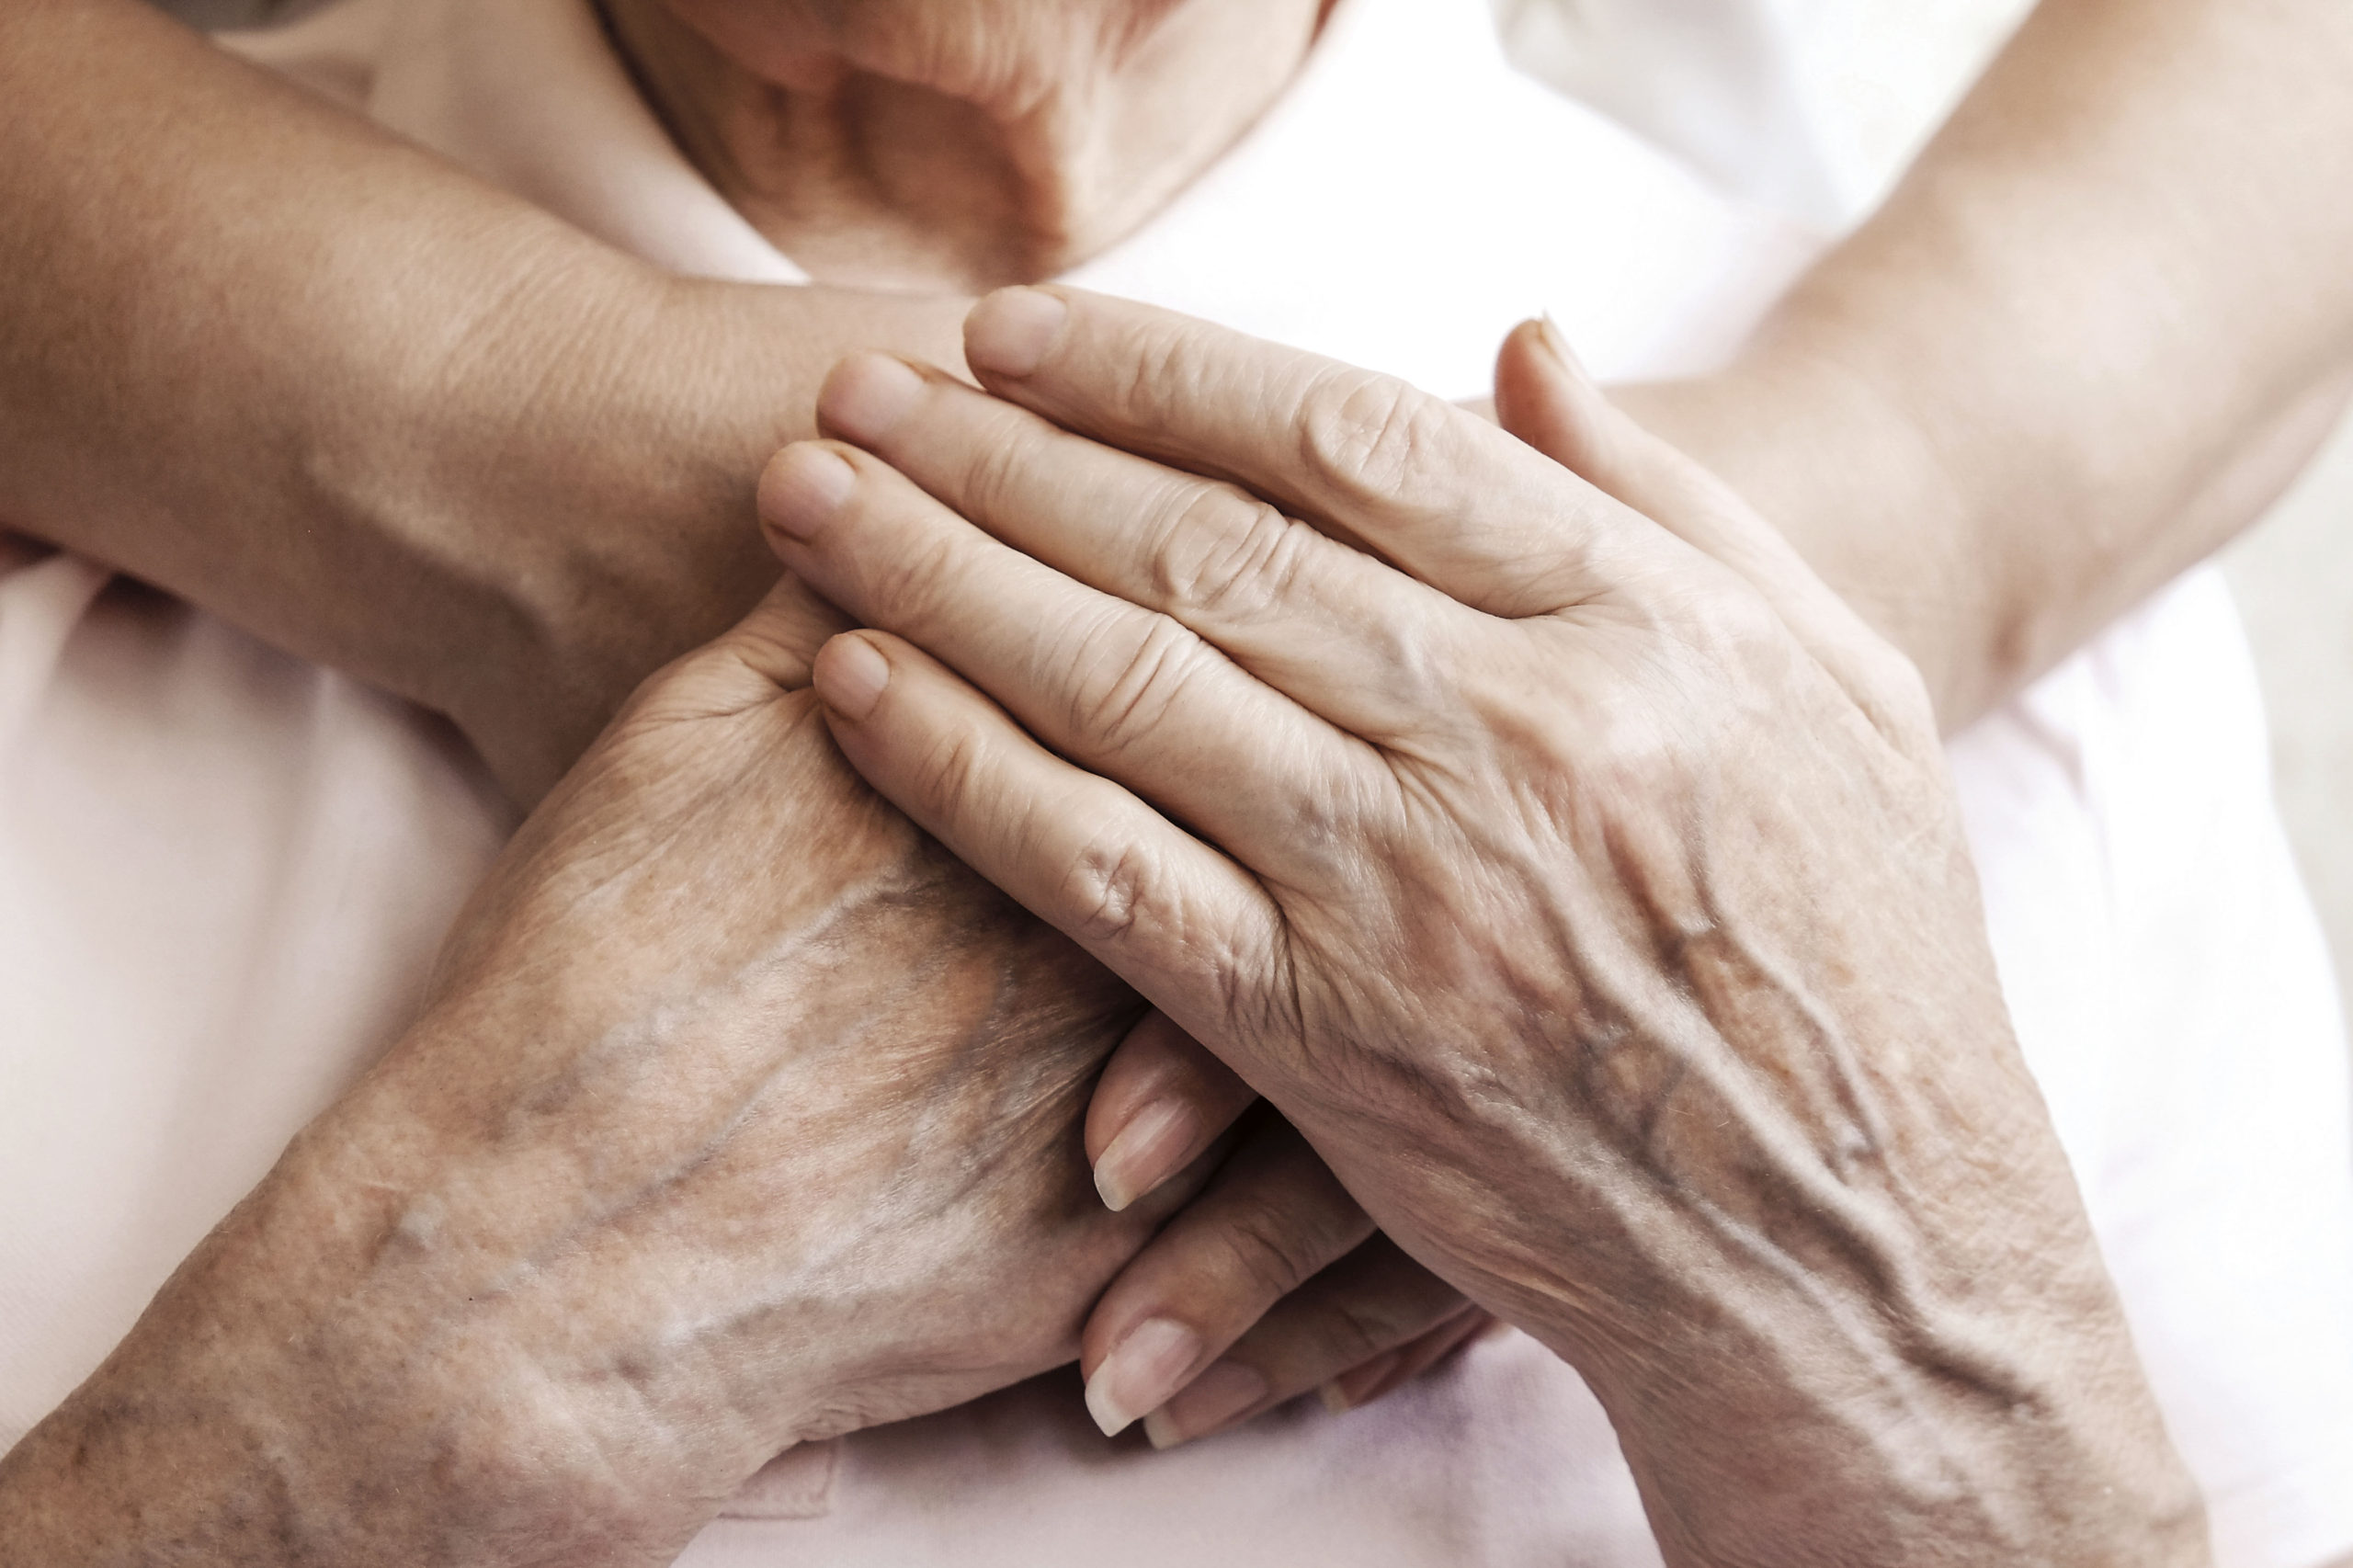 Mature female in elderly care facility gets help from hospital personnel nurse. Senior woman, aged wrinkled skin & hands of her care giver. Grand mother everyday life. Background, copy space, close up